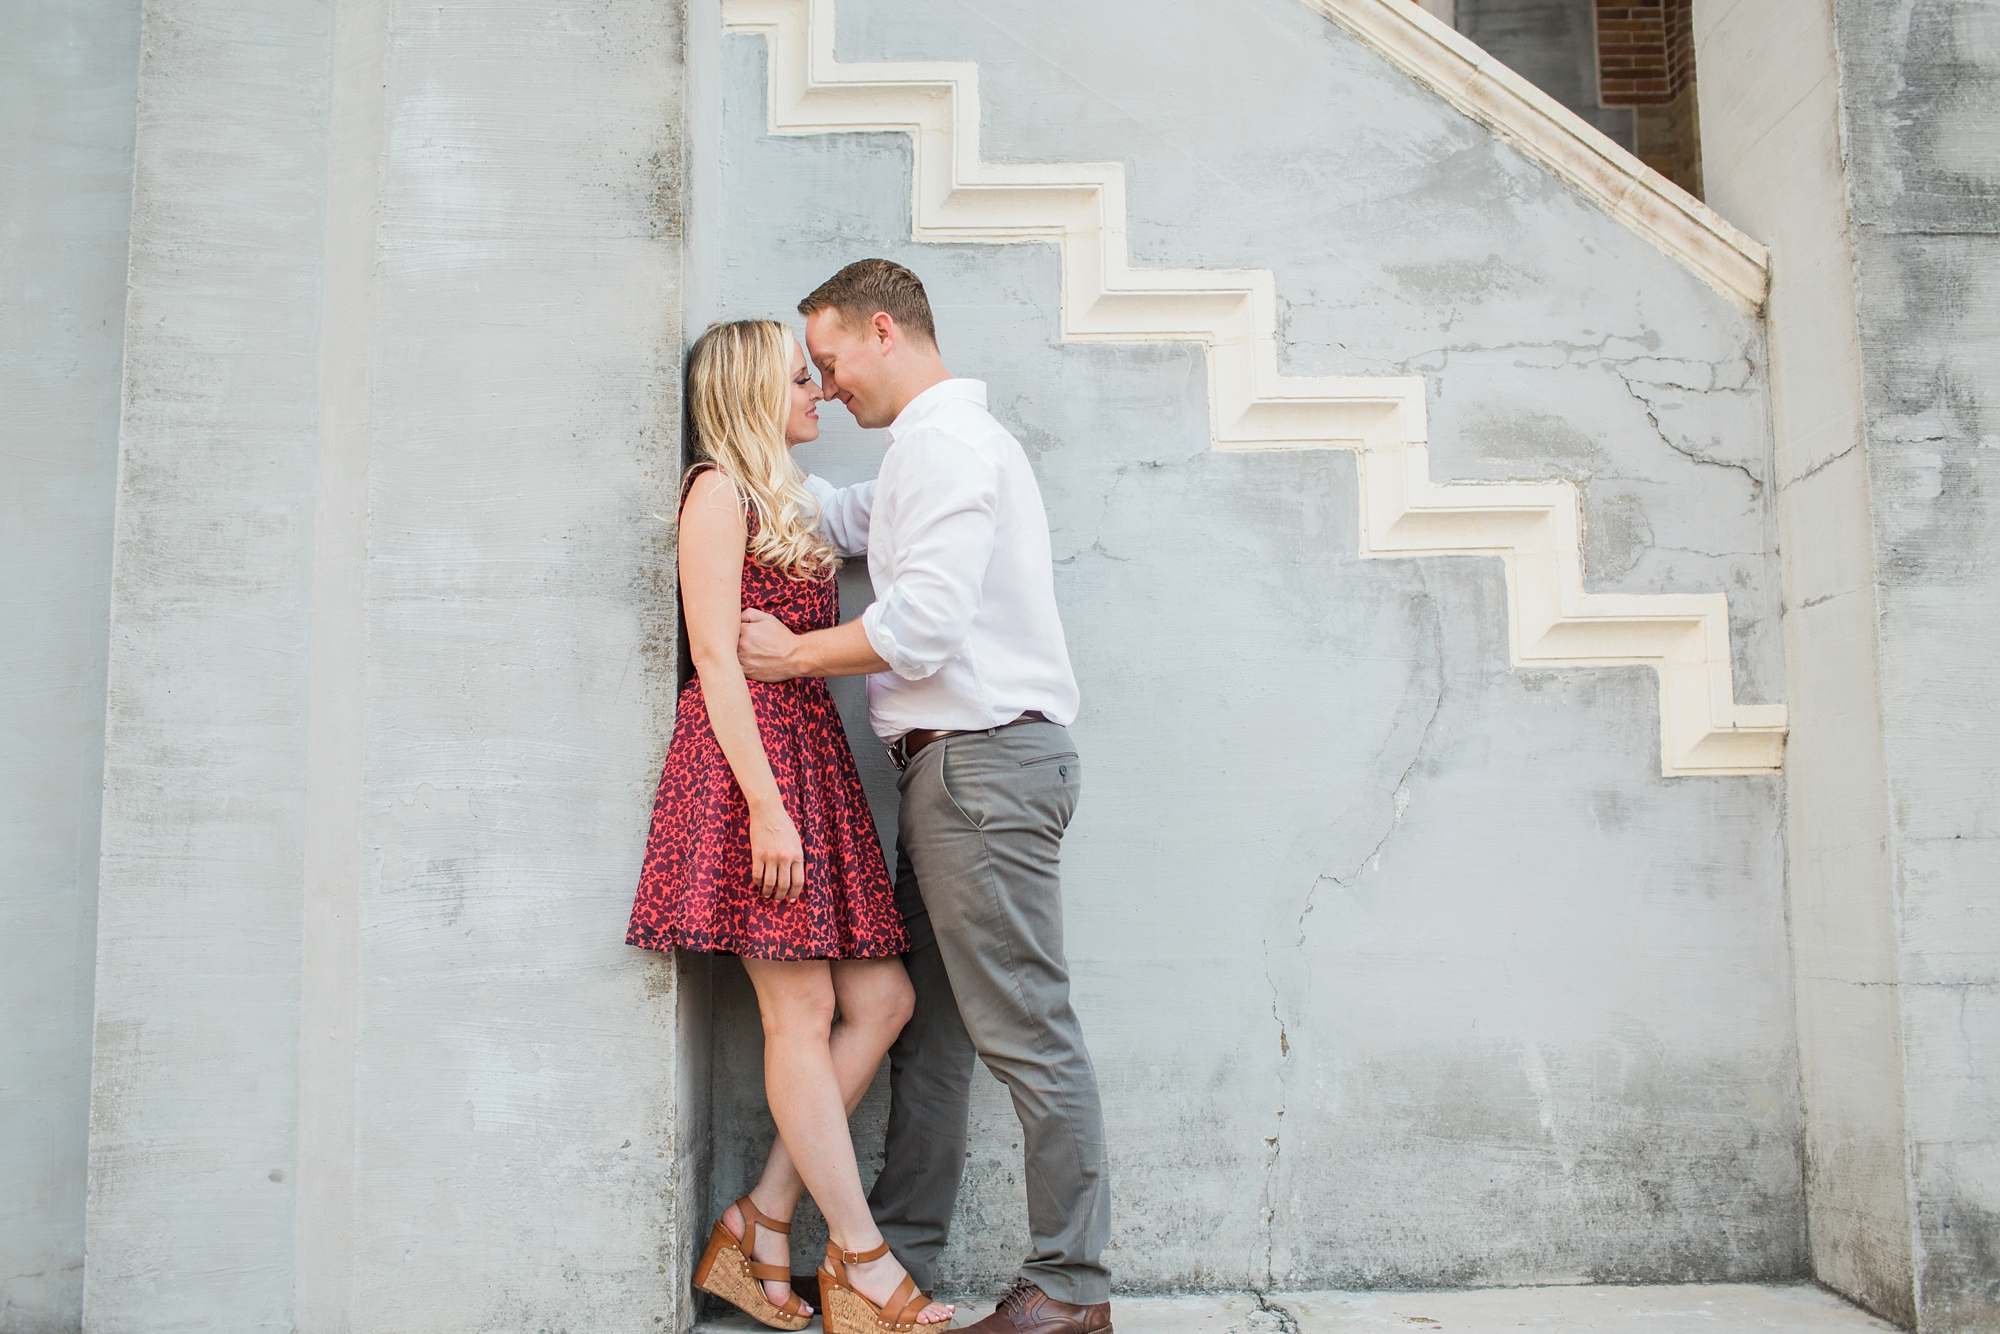 Natalie Broach Photography | St Augustine, Florida Engagement Session. Couple Photoshoot in St. Augustine, Florida.